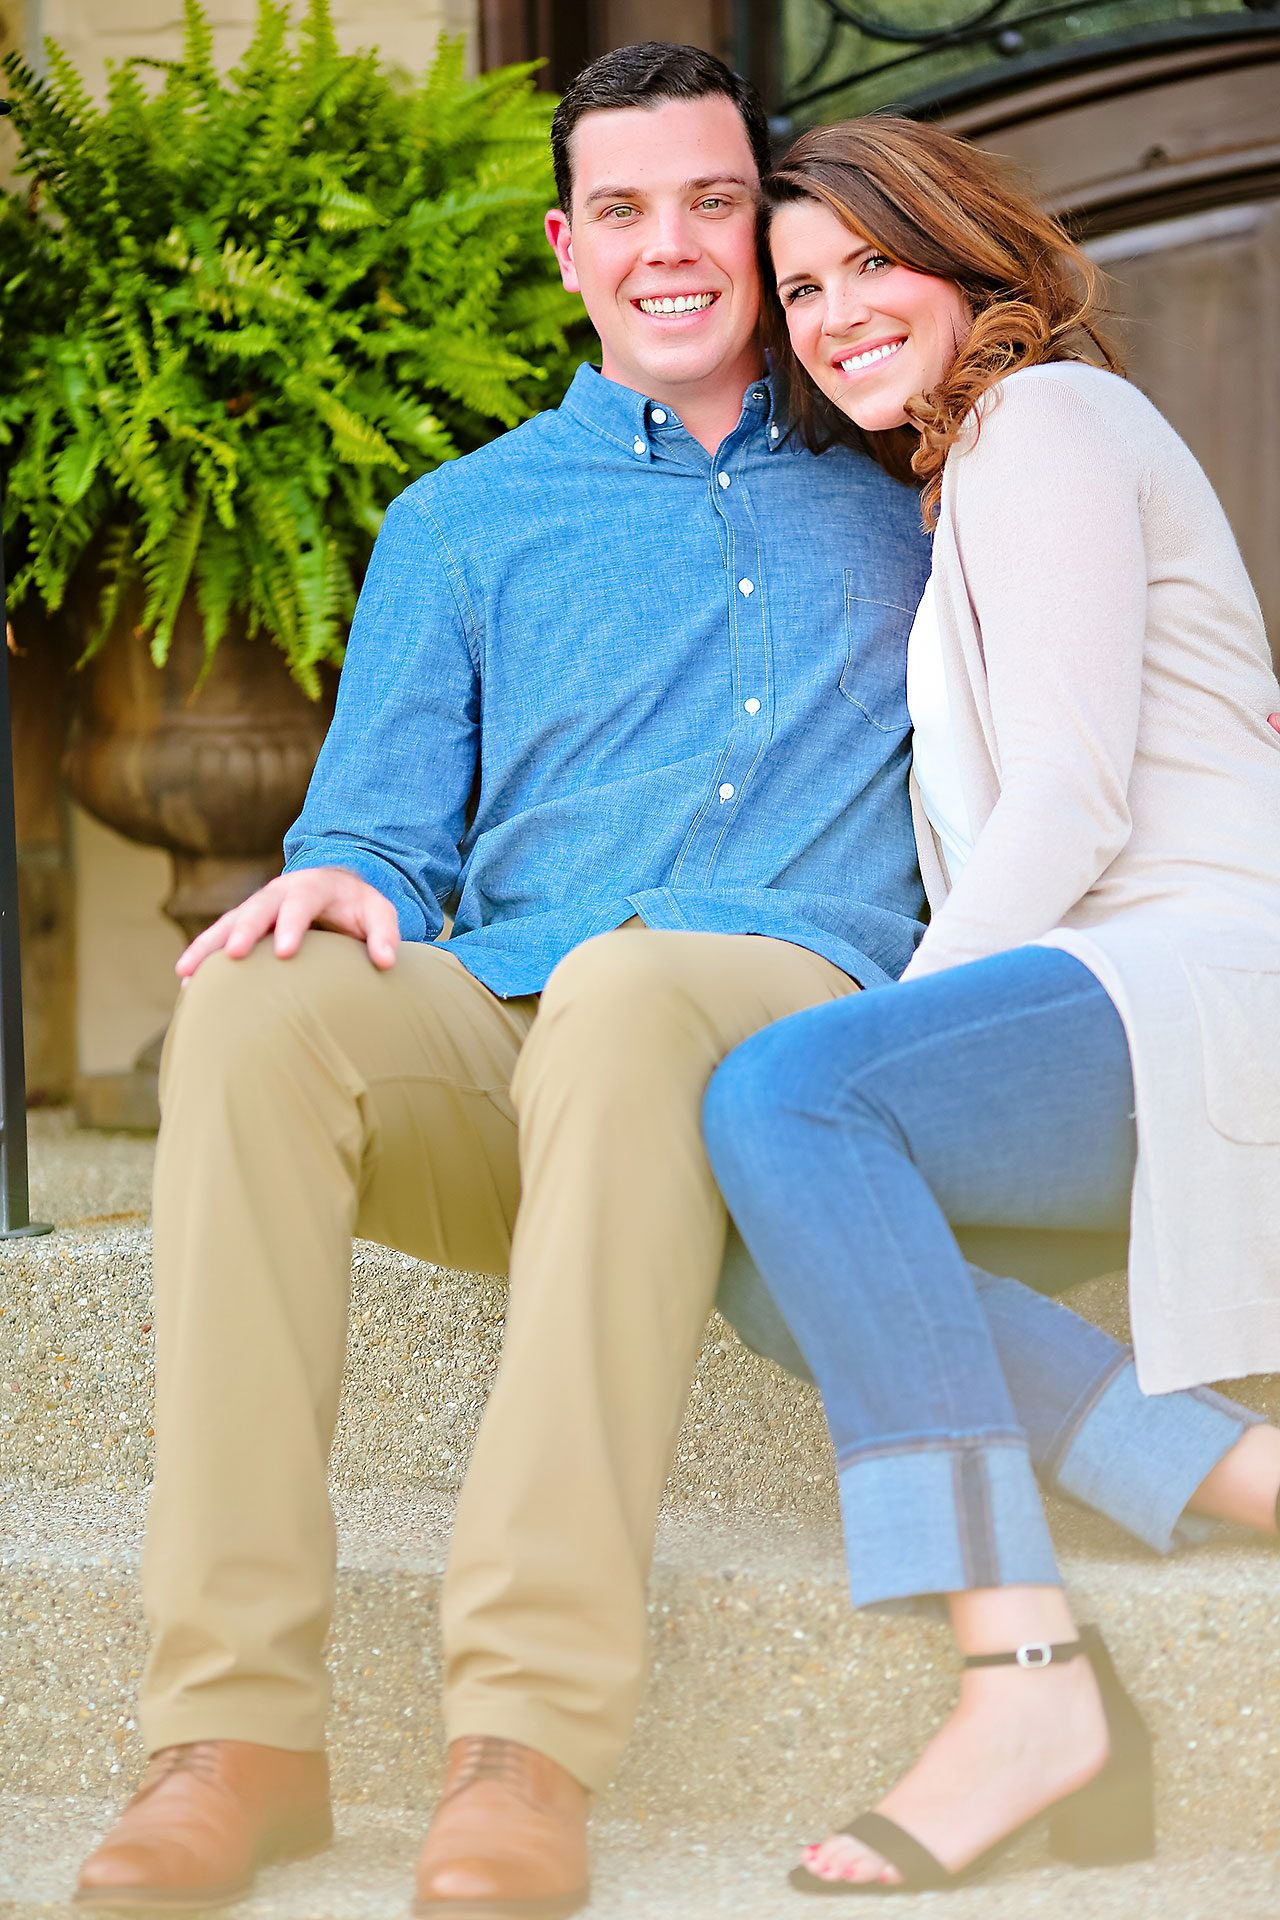 Emily JD Carmel Indiana Engagement Session 061